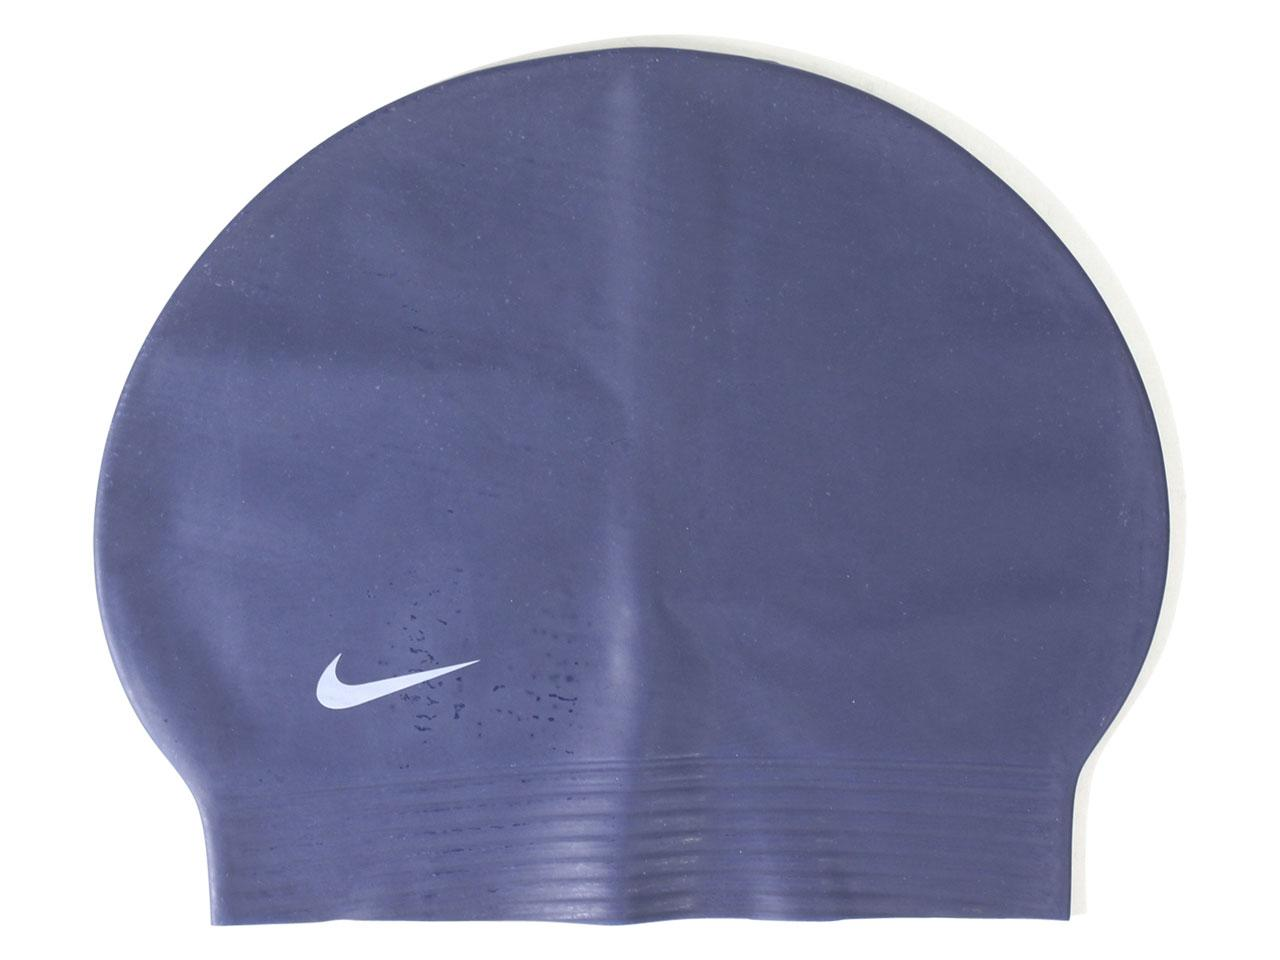 Nike Solid Latex Swim Cap (One Size Fits Most) 281ae746f43